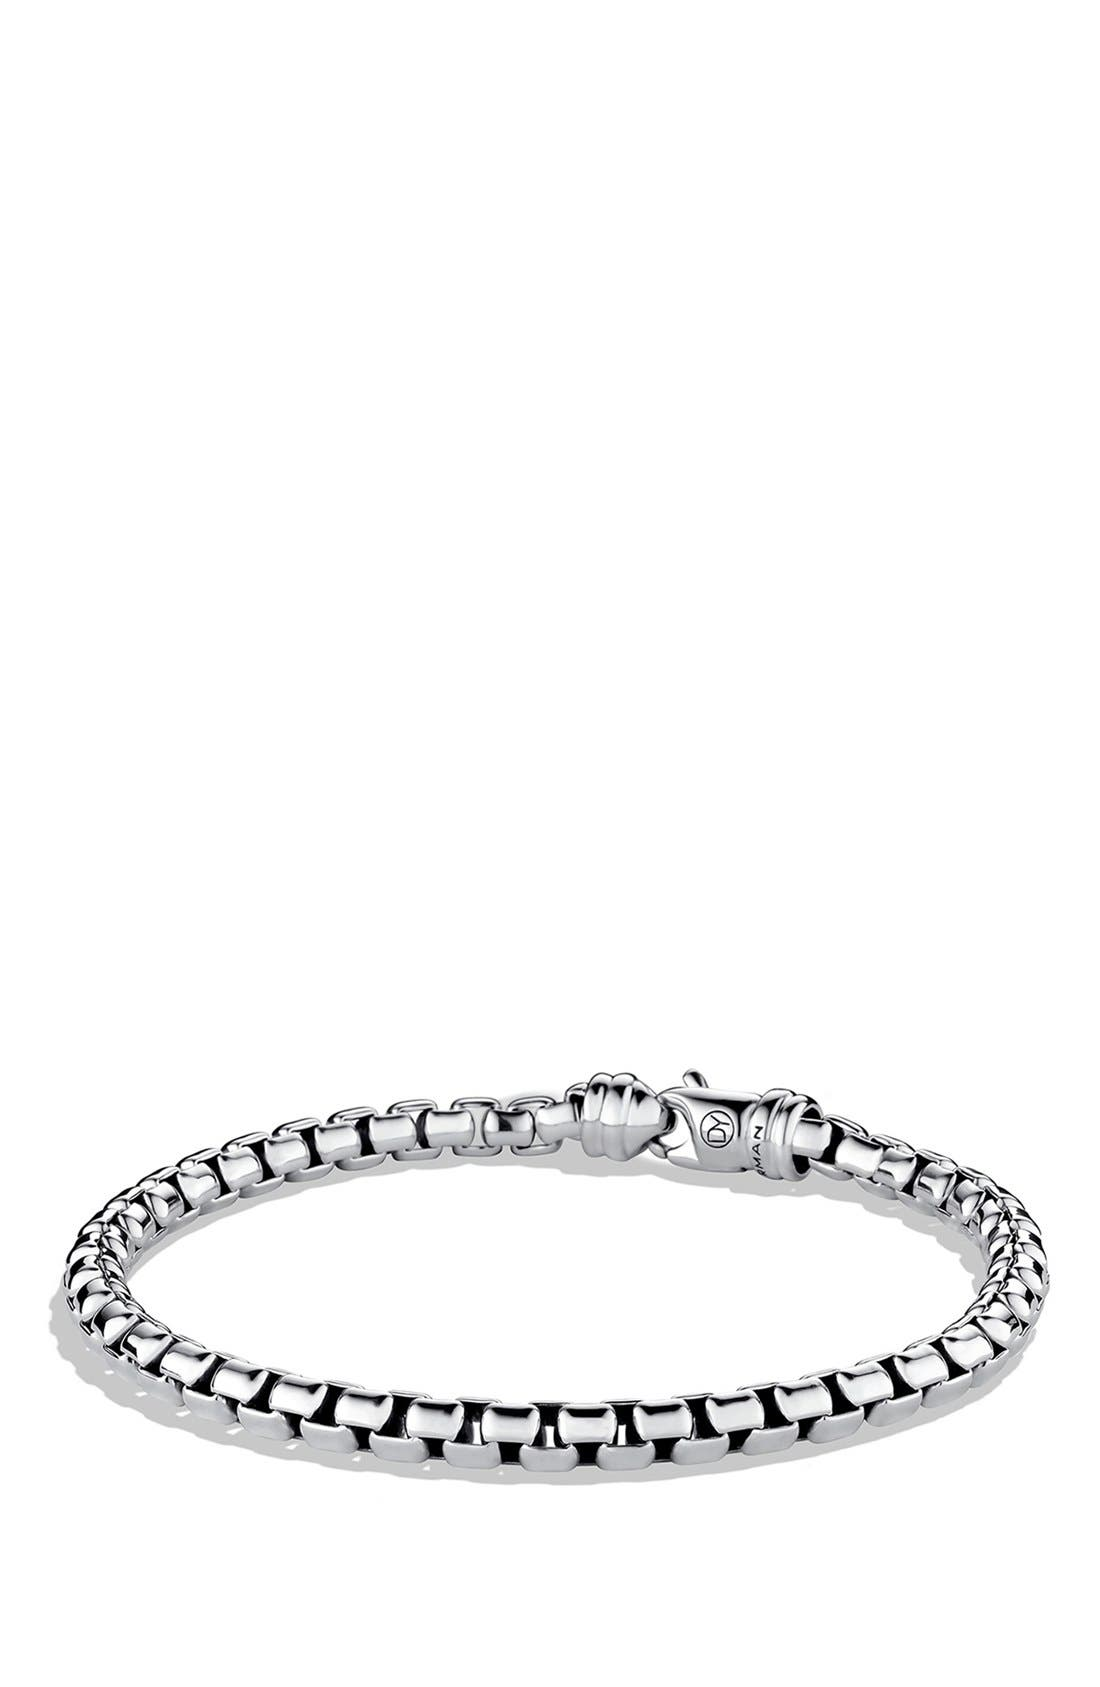 DAVID YURMAN Chain Large Link Box Chain Bracelet